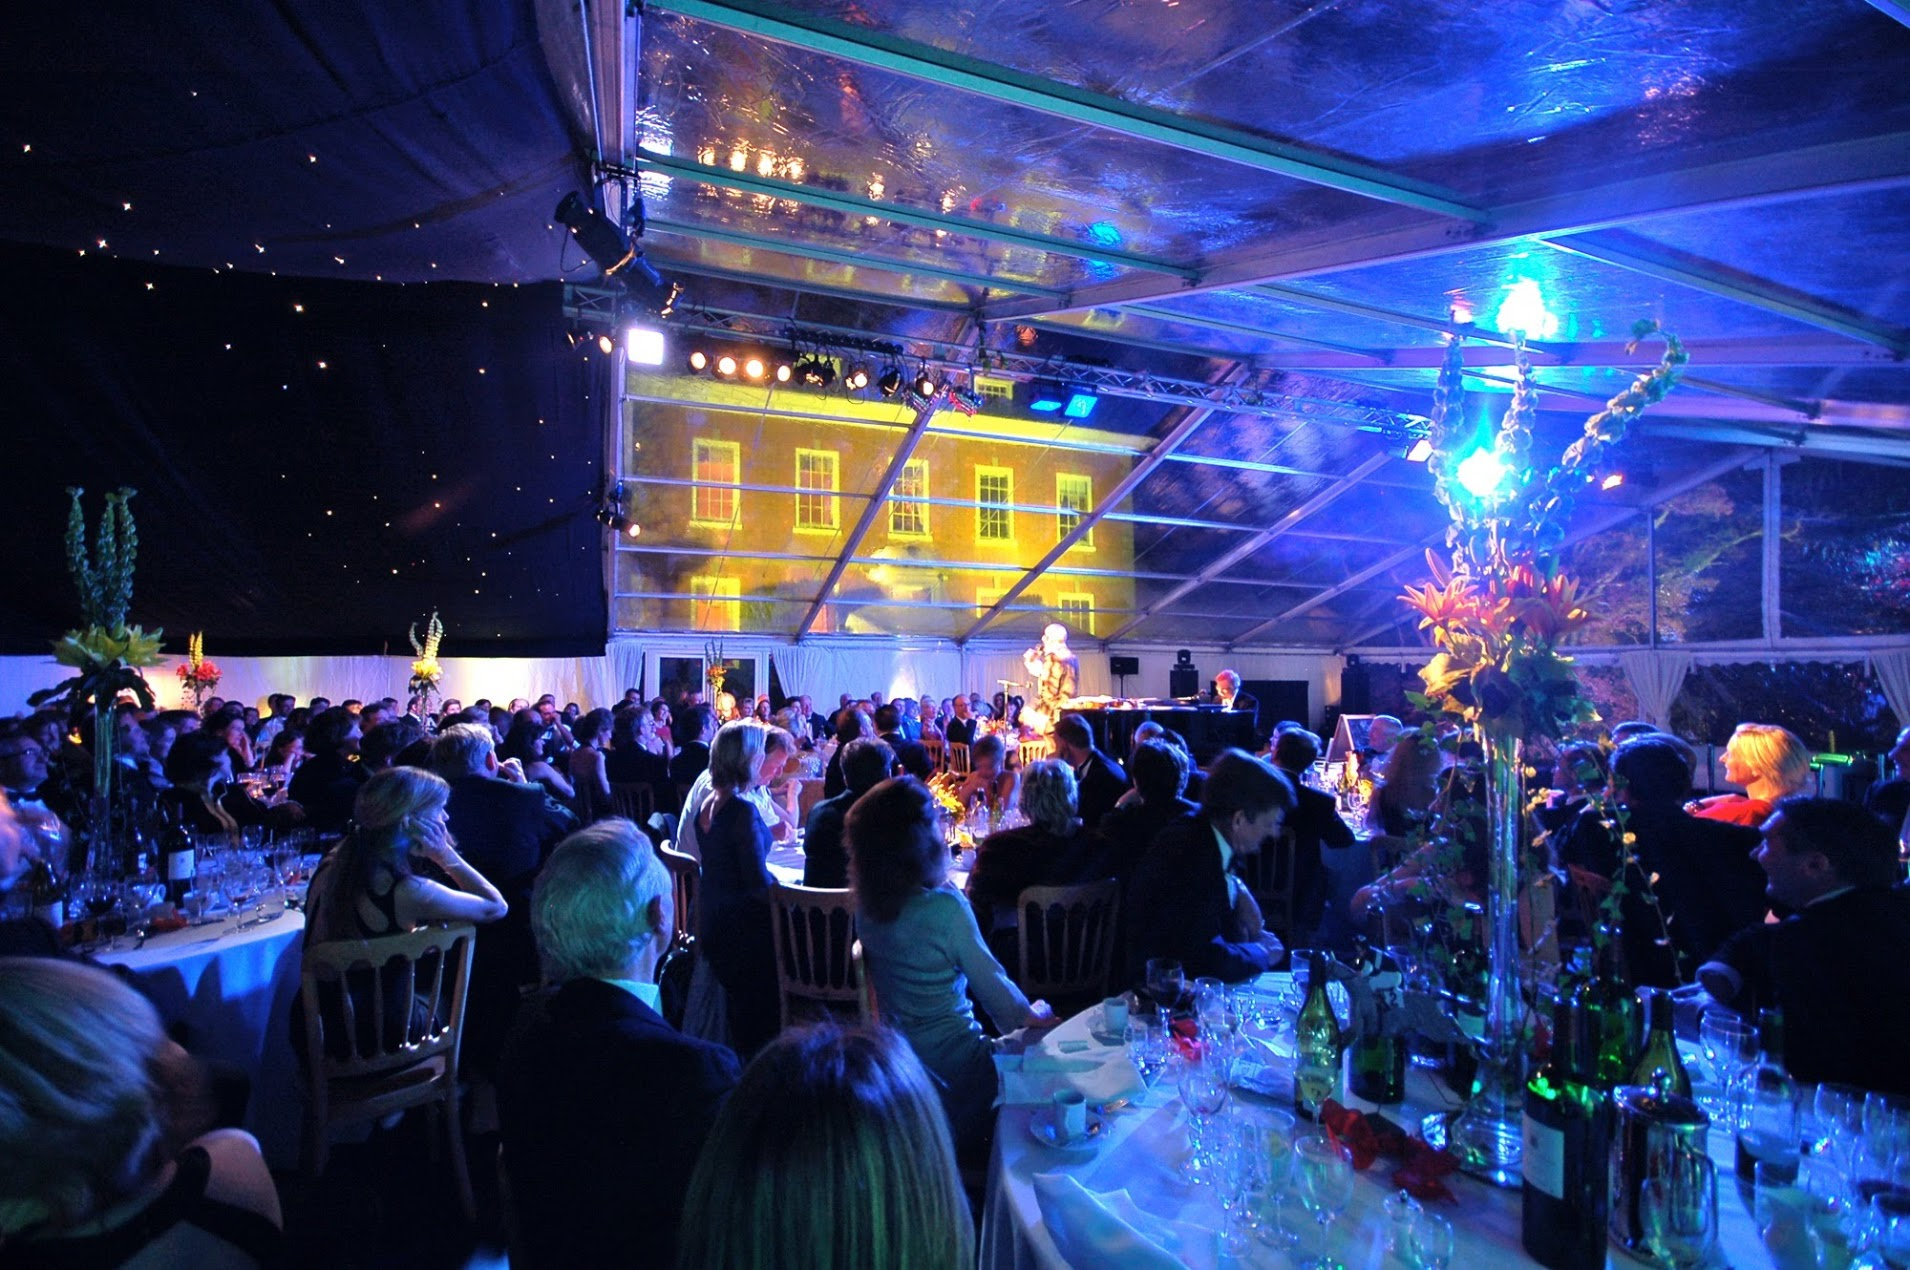 Dinner party in a clear marquee